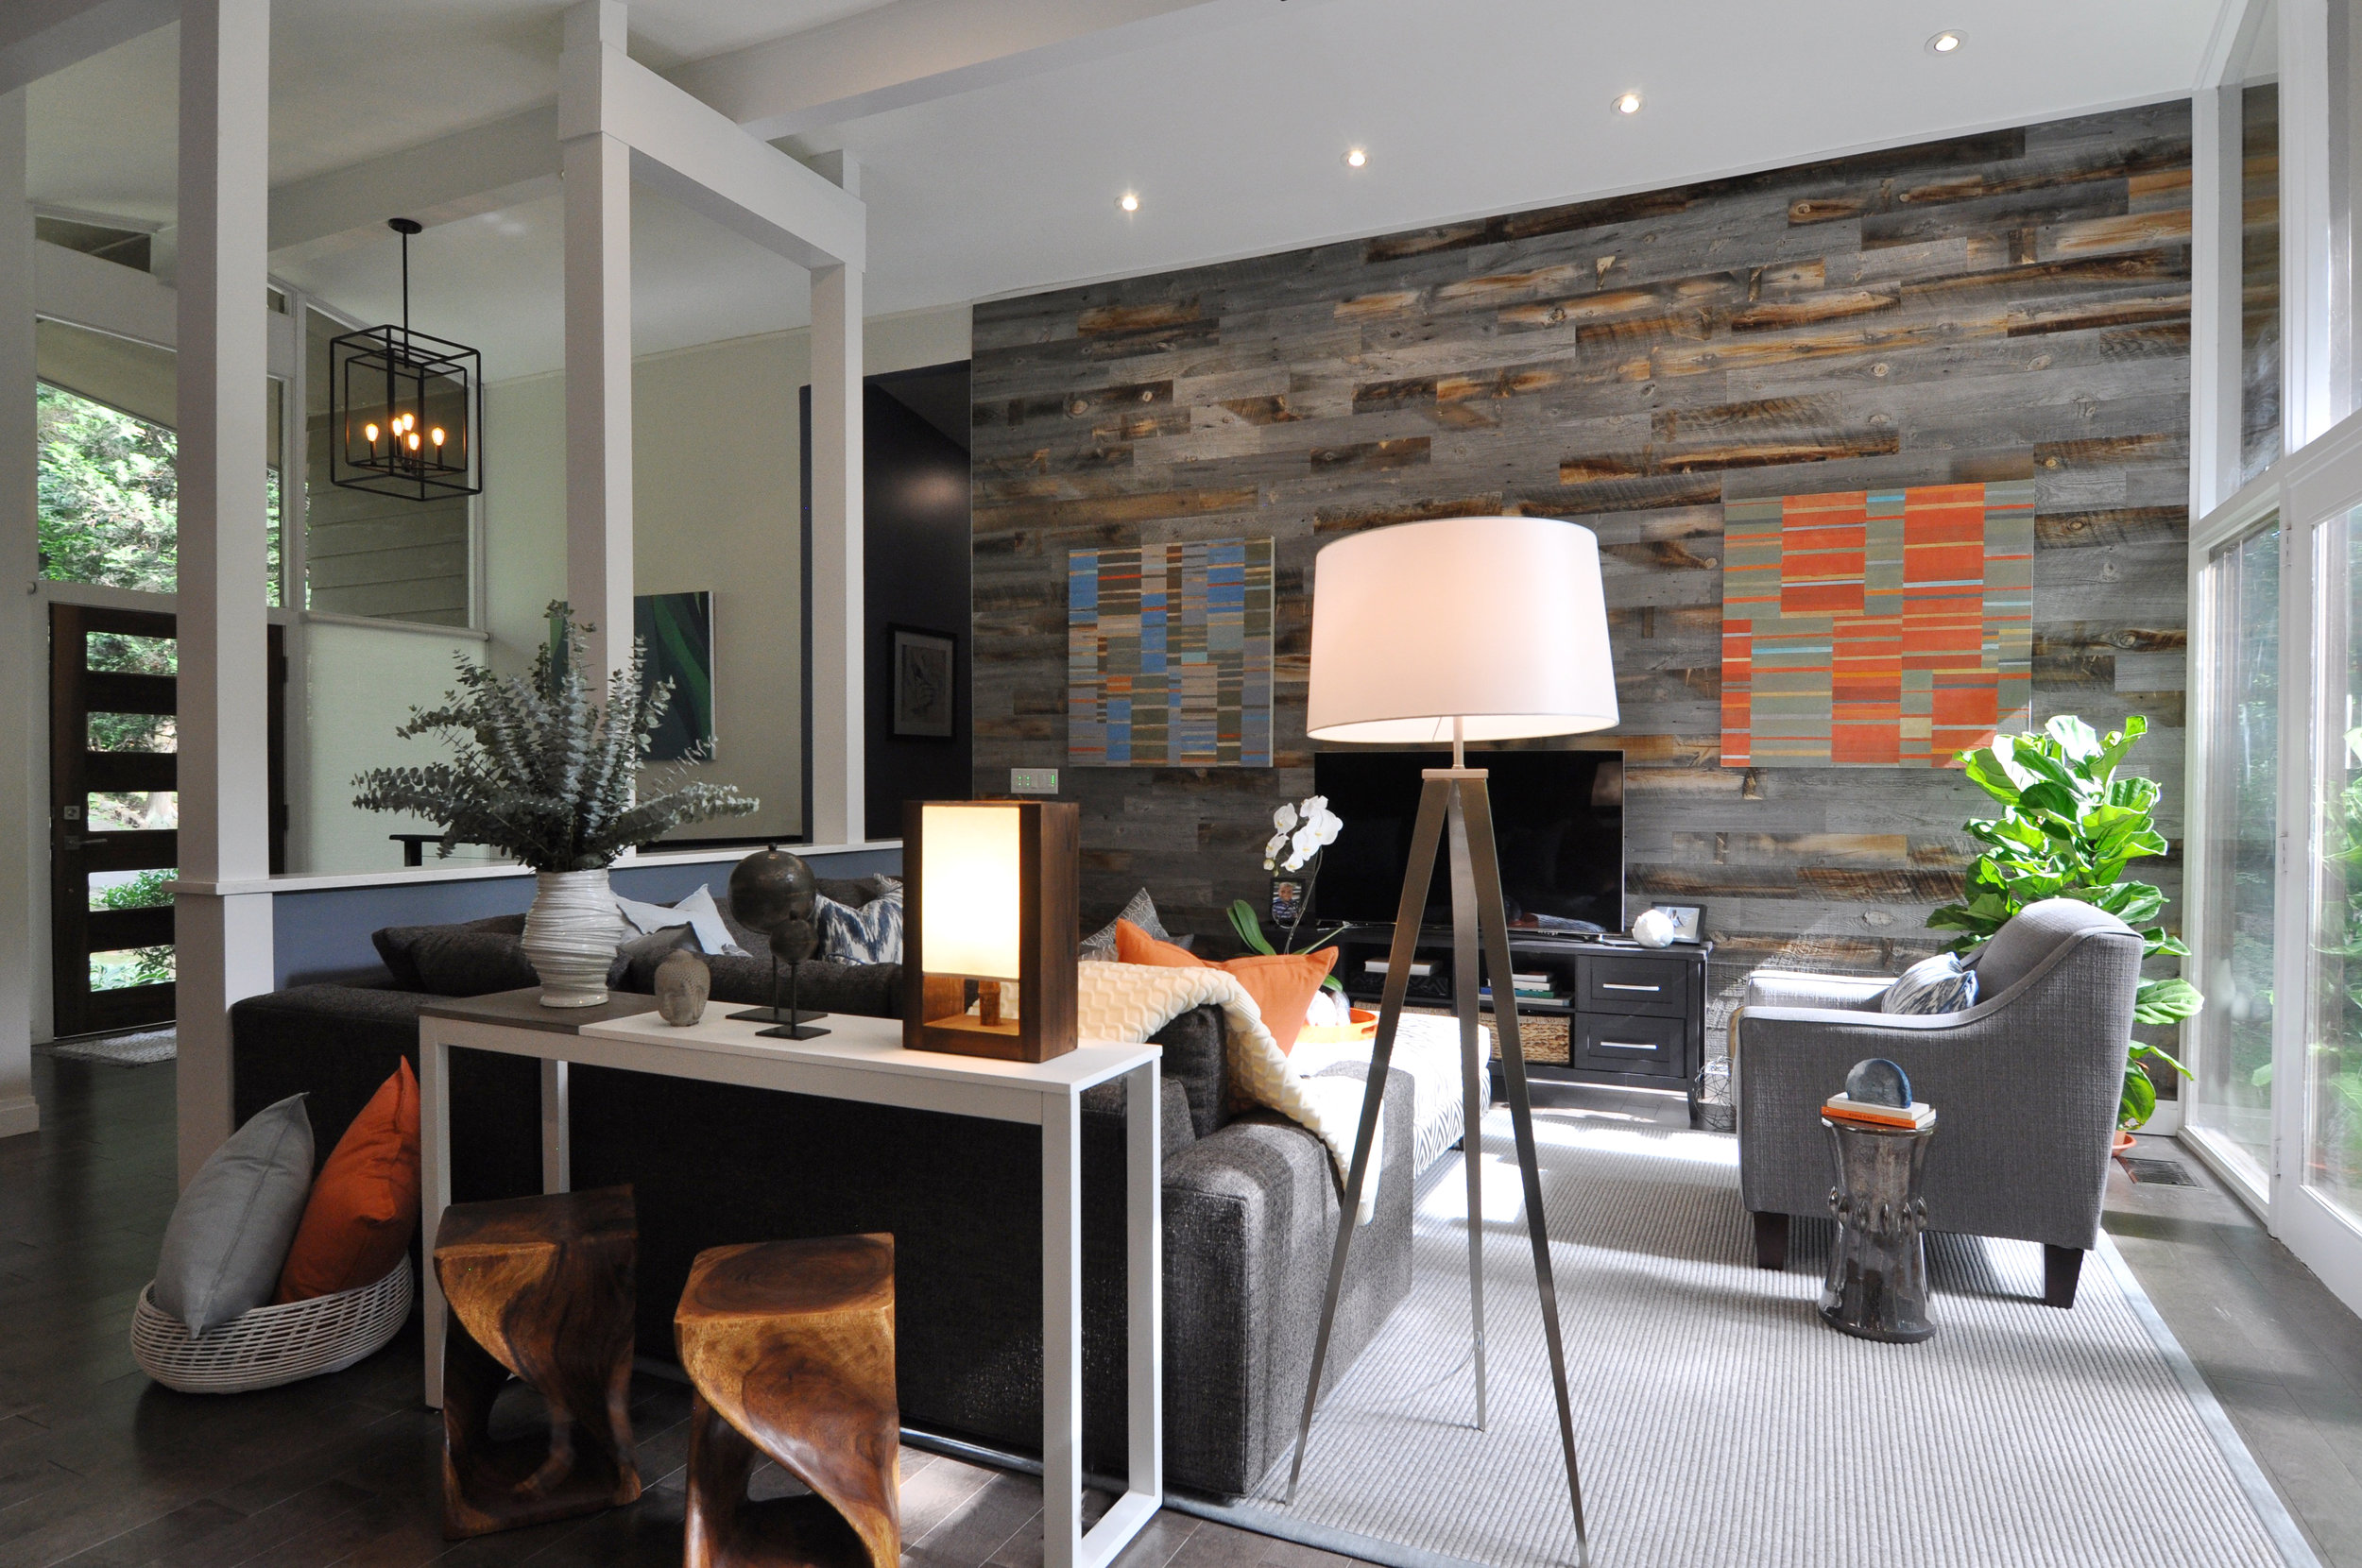 Kim A Mitchell_Design Lead_The Property Brothers_Season 6_Episode 9_Living Room.jpg